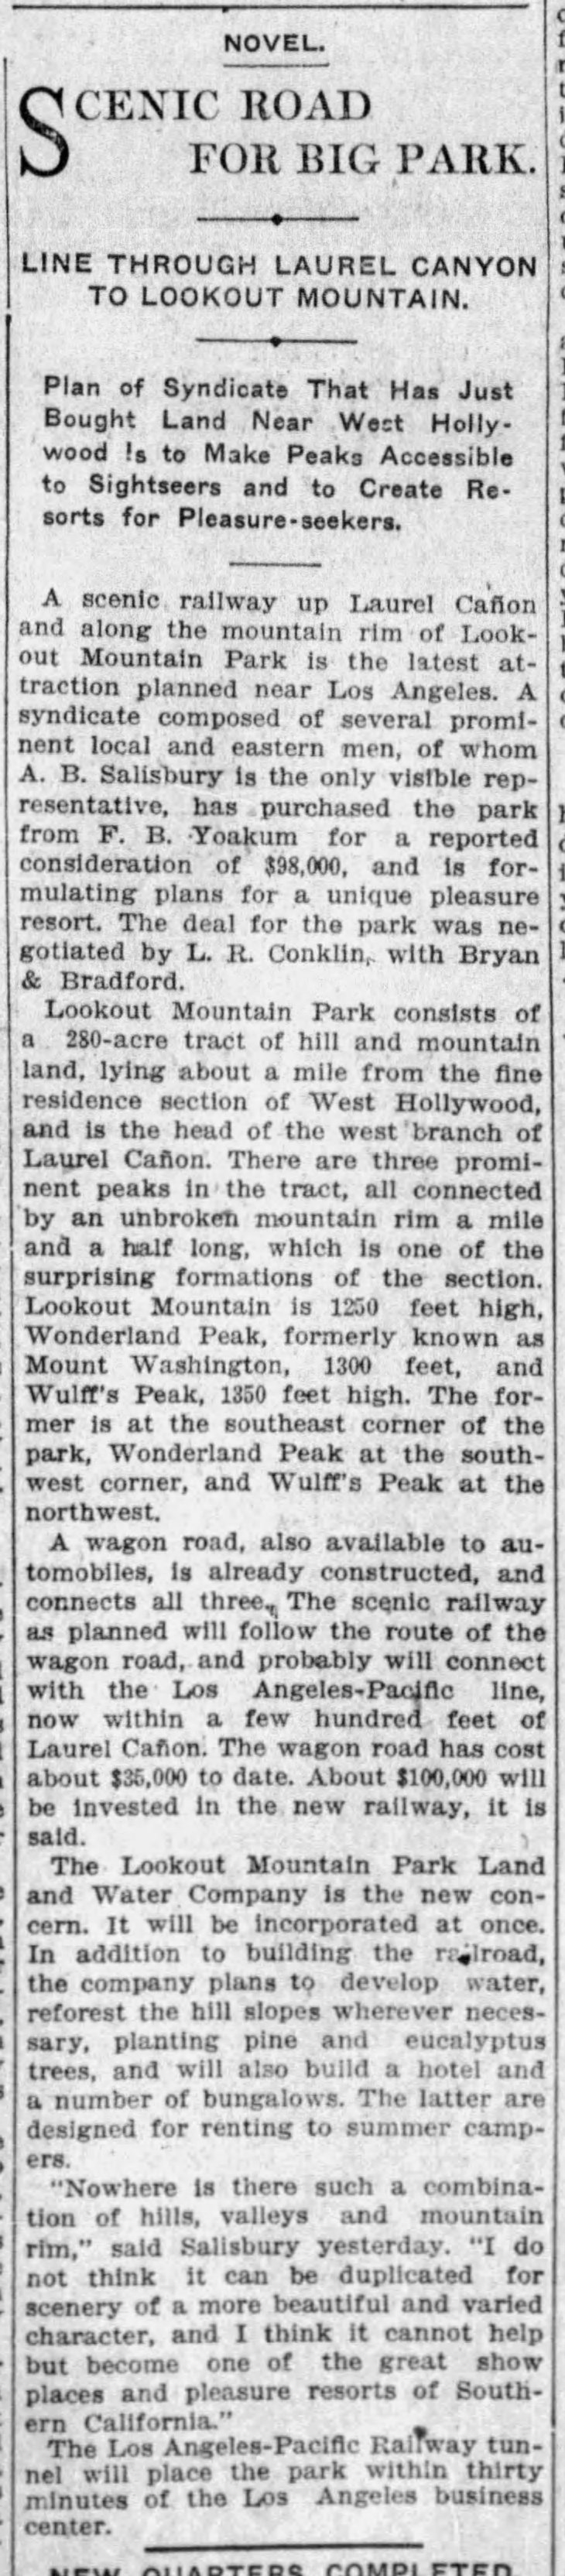 Lookout Mountain Park The_Los_Angeles_Times_Fri__Aug_14__1908_